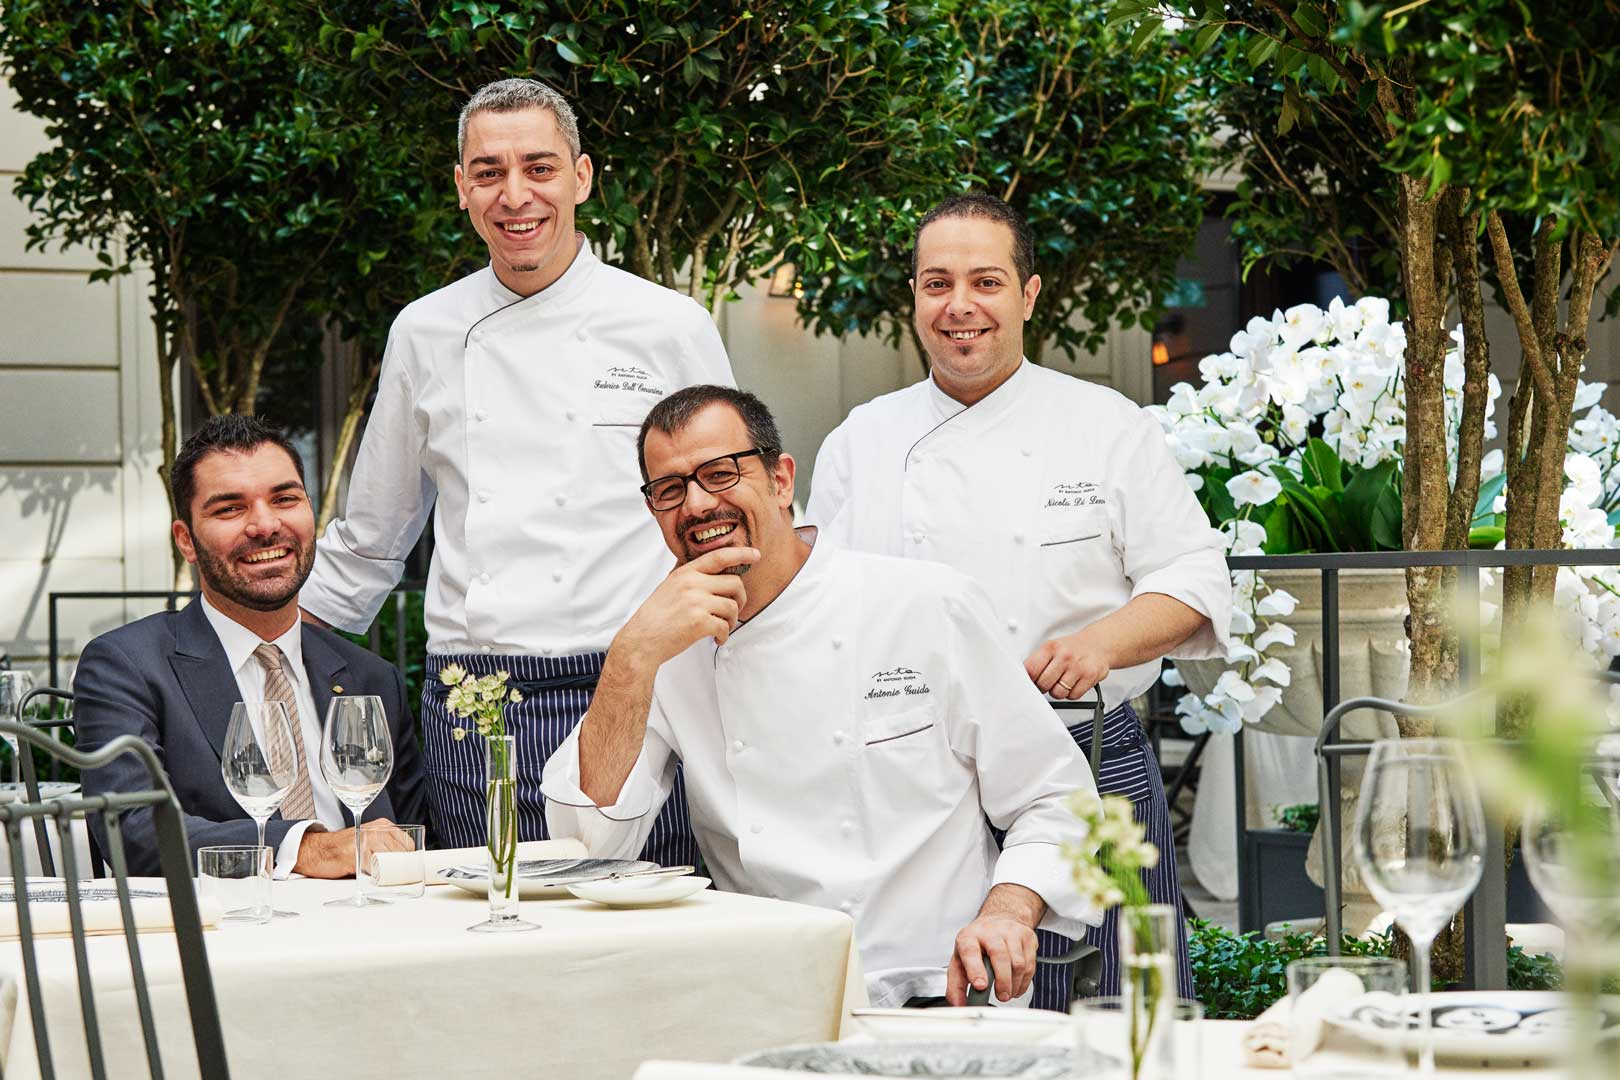 Executive Chef Antonio Guida, Executive Sous Chef Dellomarino, Pastry Chef Di Lena, Restaurant Manager Tasinato